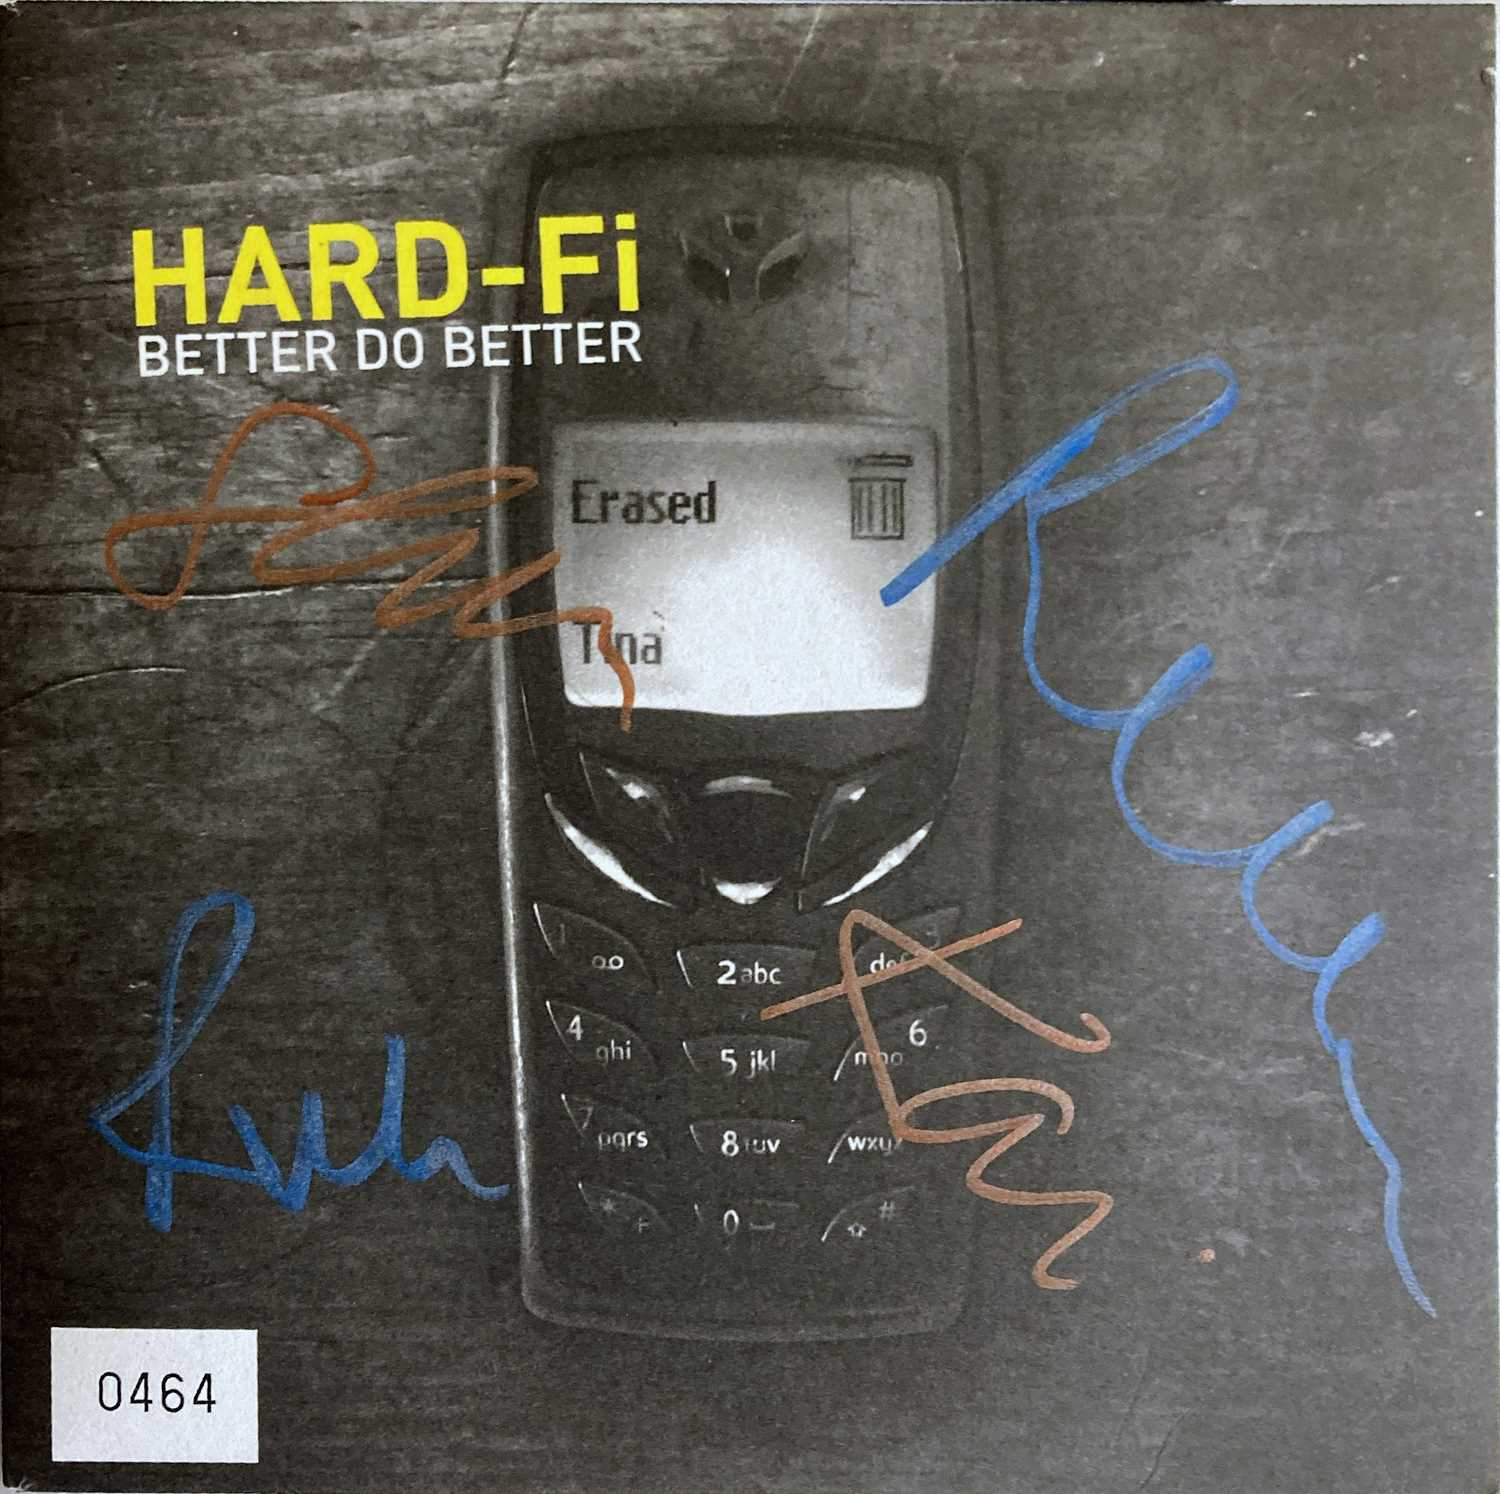 INDIE ARTISTS SIGNED ITEMS - HARD FI. - Image 6 of 11